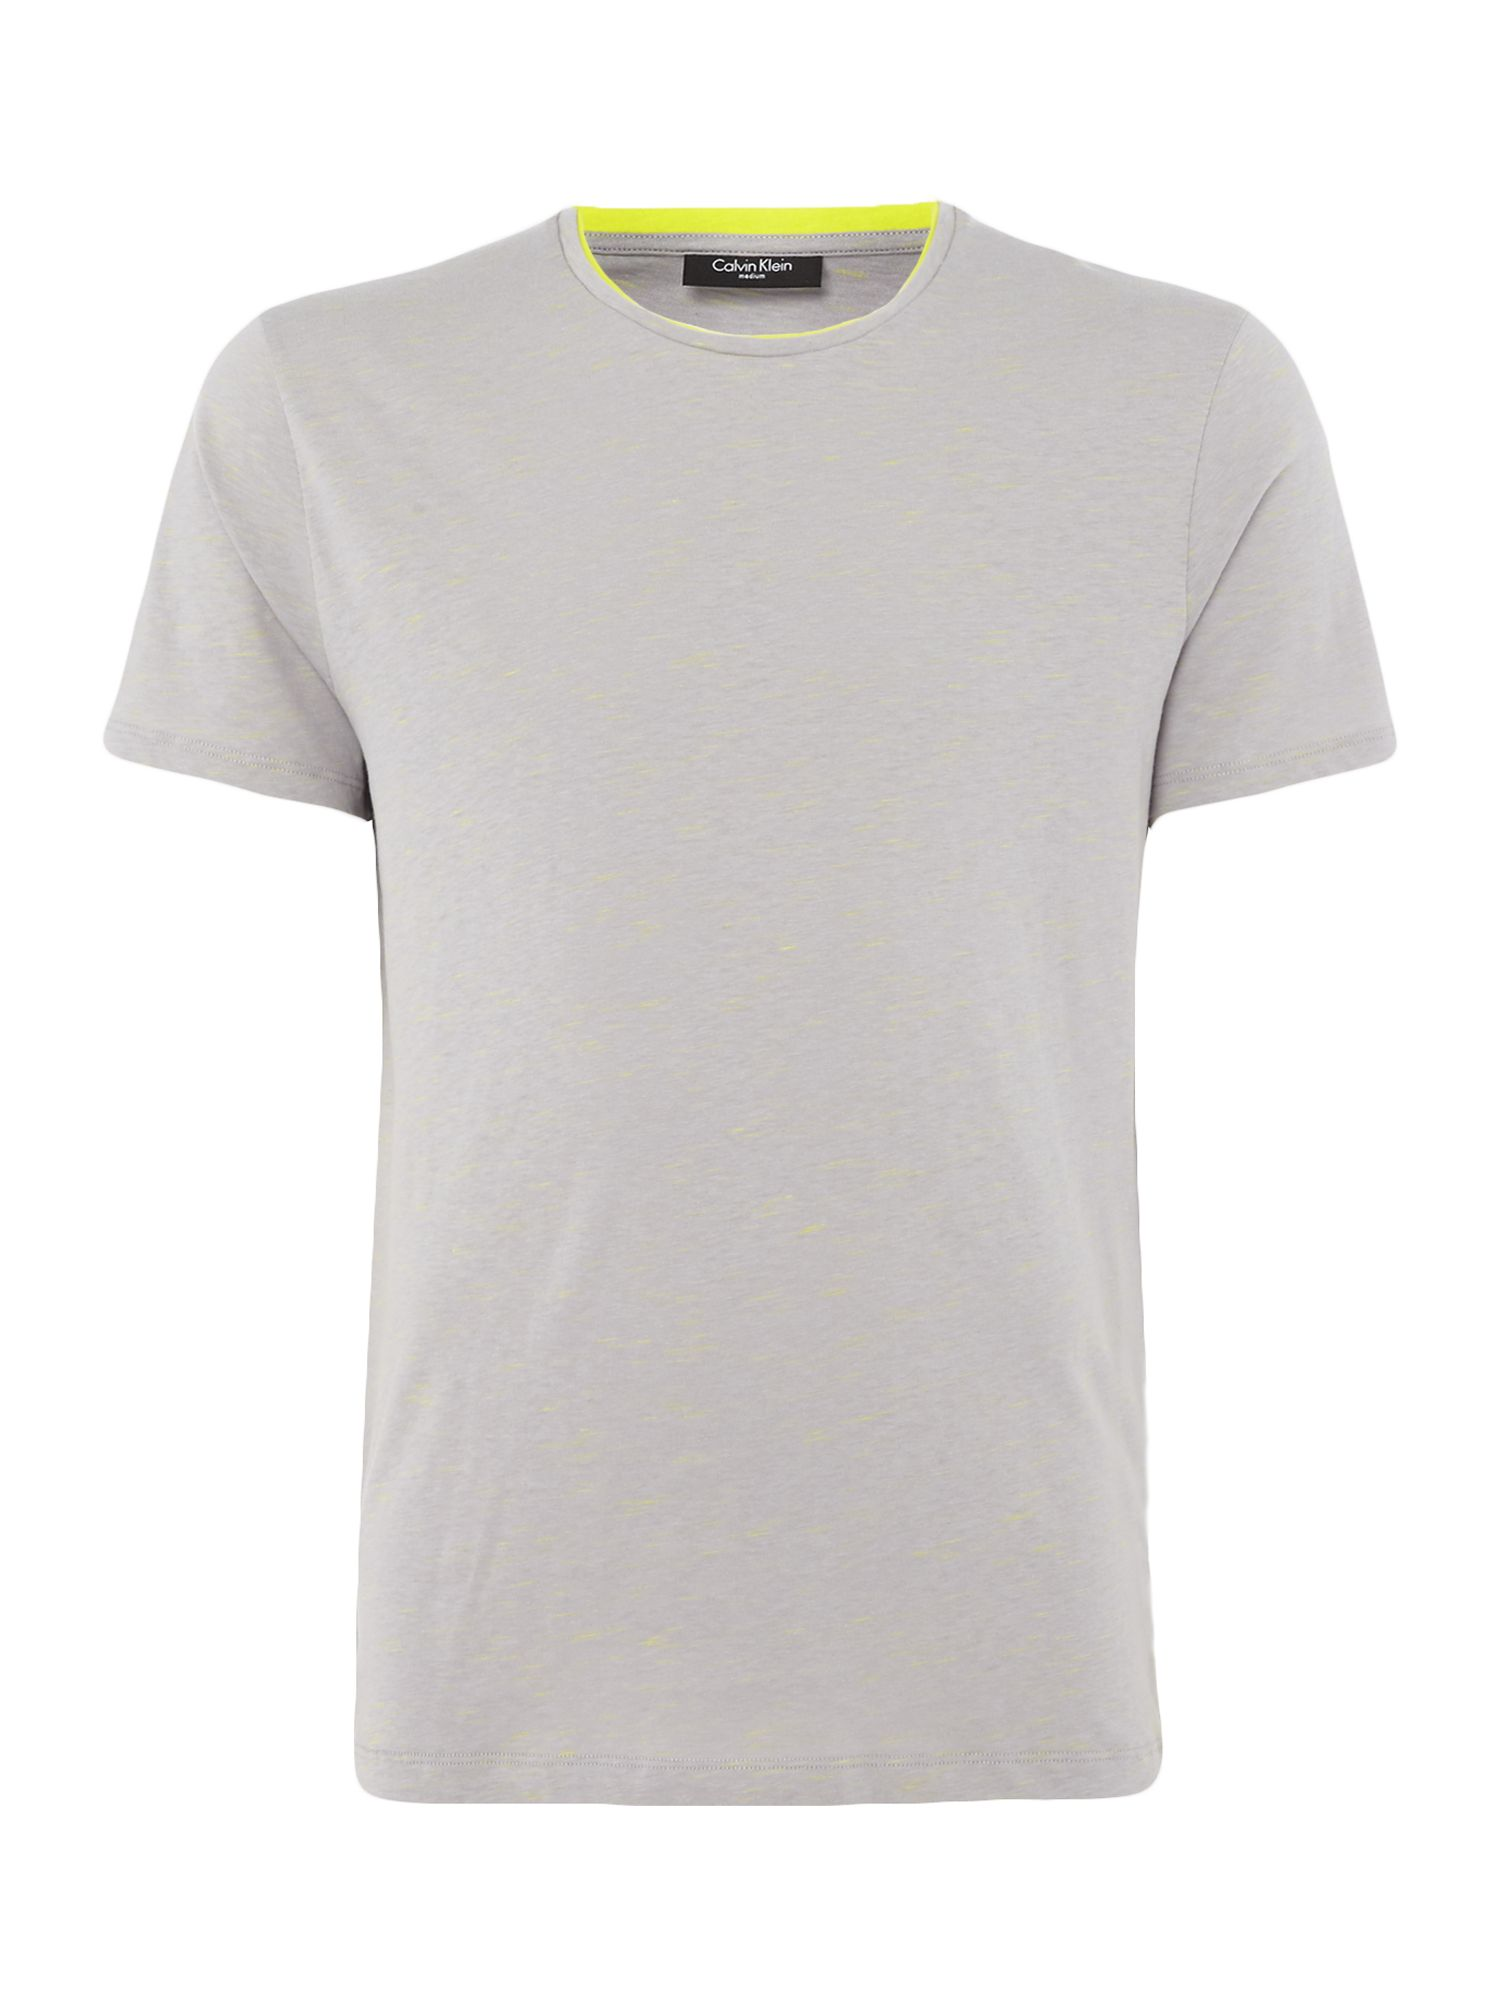 Men's Calvin Klein Jaspa T-shirt, Mid Grey